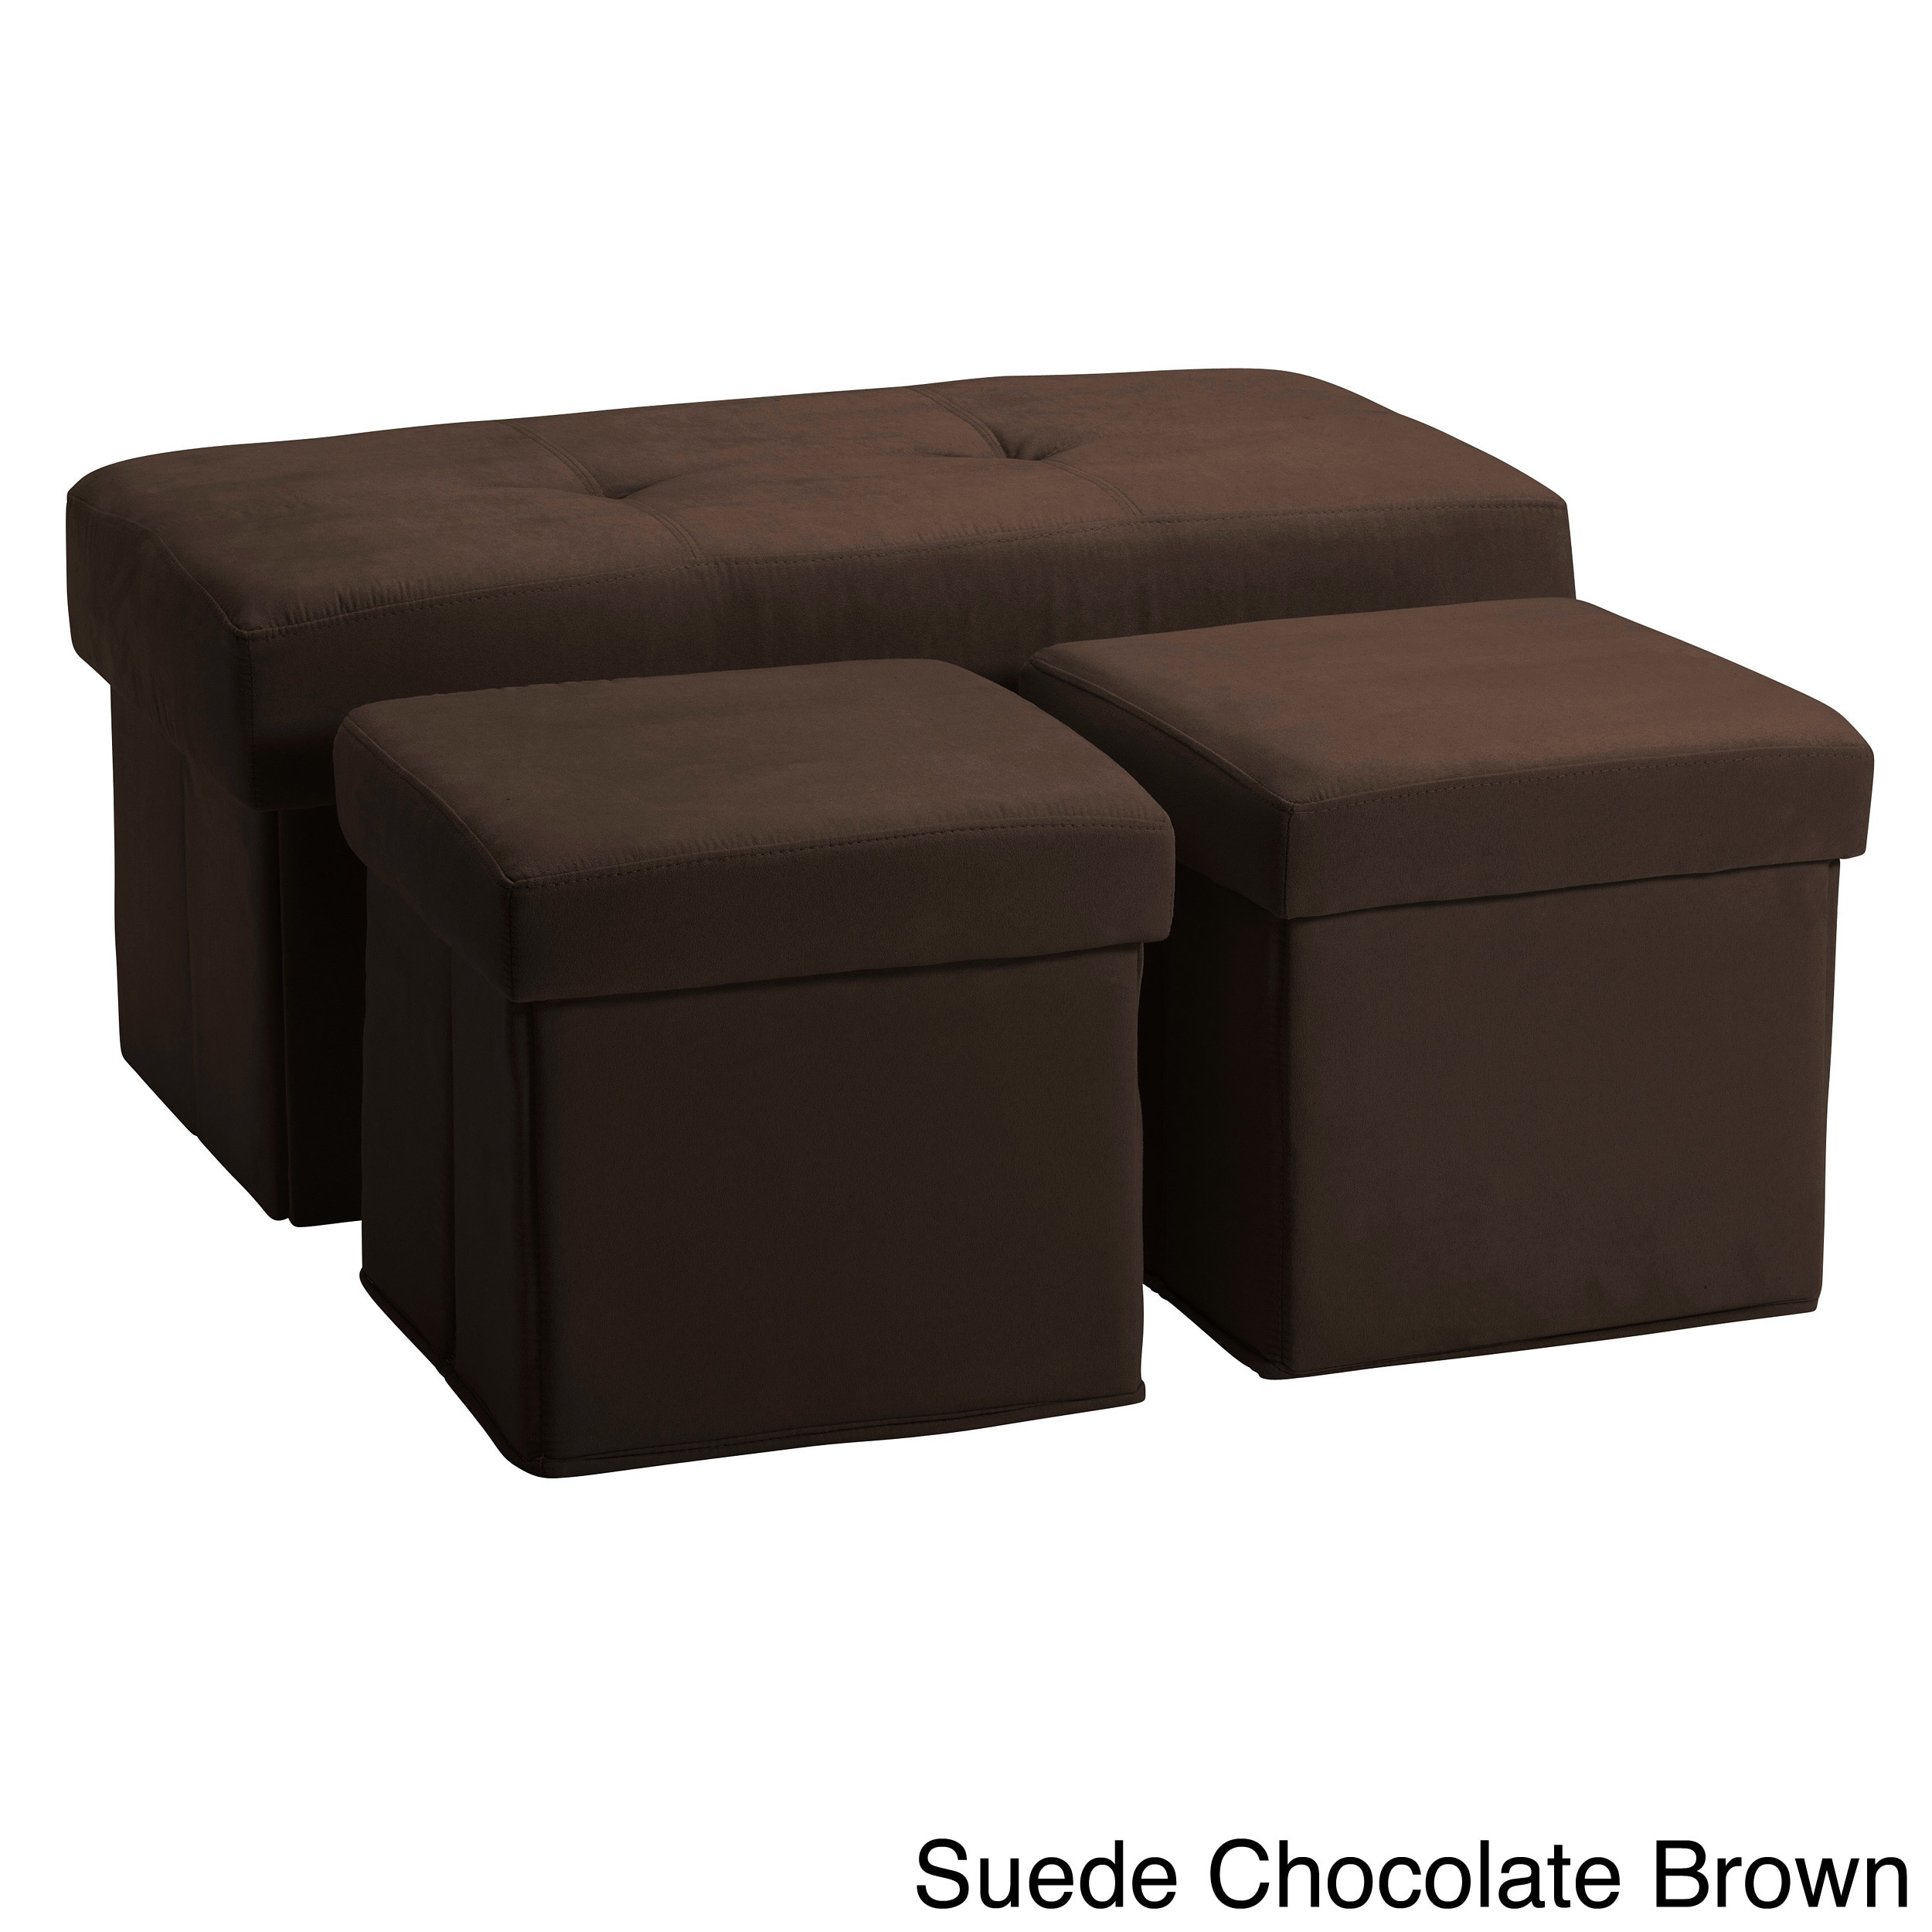 vanderbilt foldable 3 piece storage ottoman set